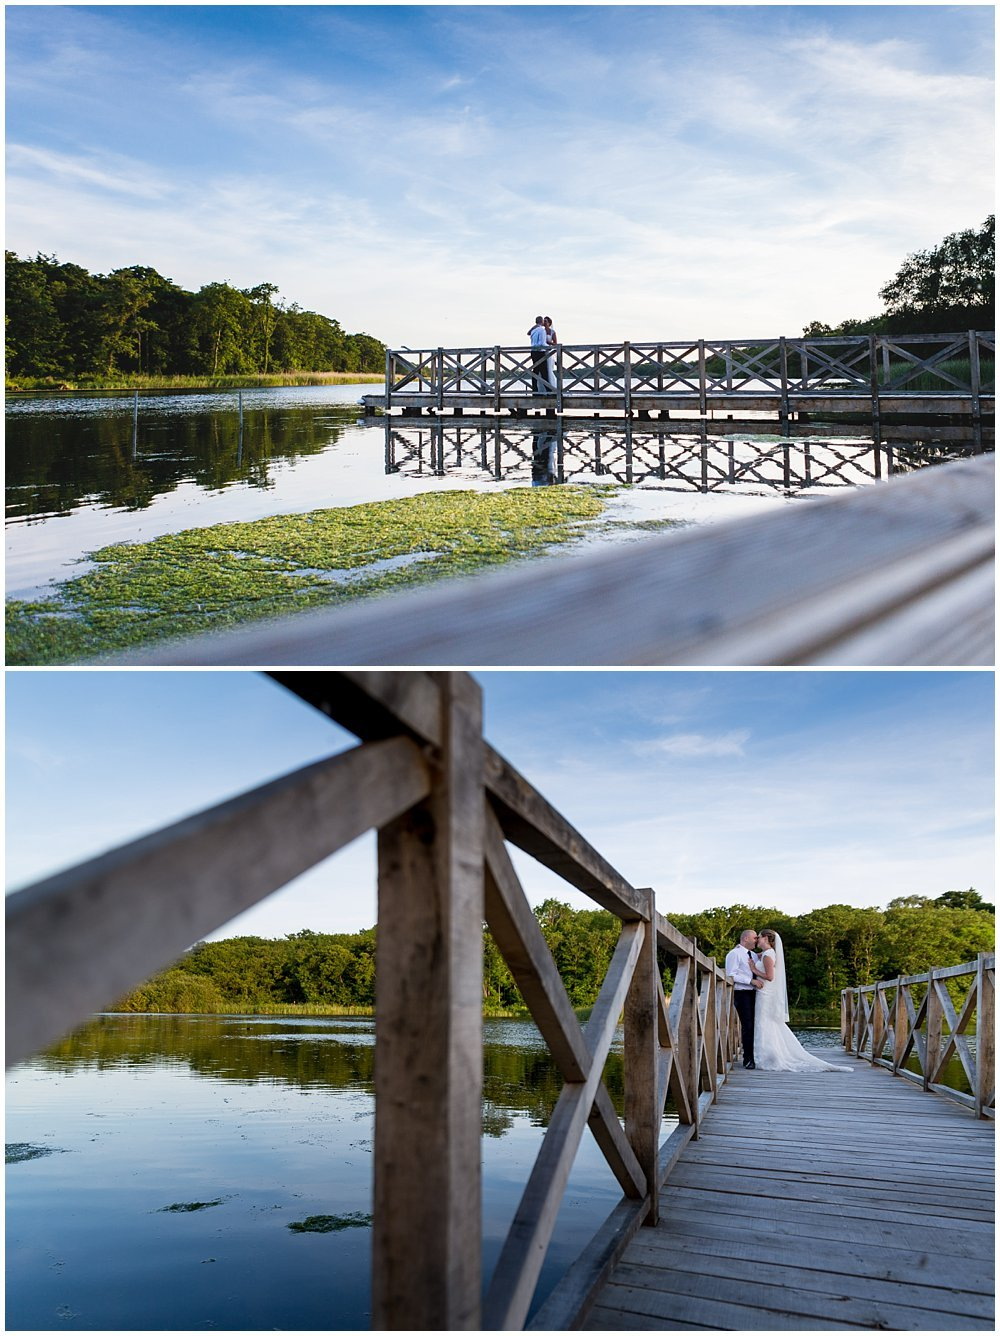 AMY AND DUNCAN NORWICH CATHEDRAL AND THE BOATHOUSE WEDDING - NORWICH AND NORFOLK WEDDING PHOTOGRAPHER 45